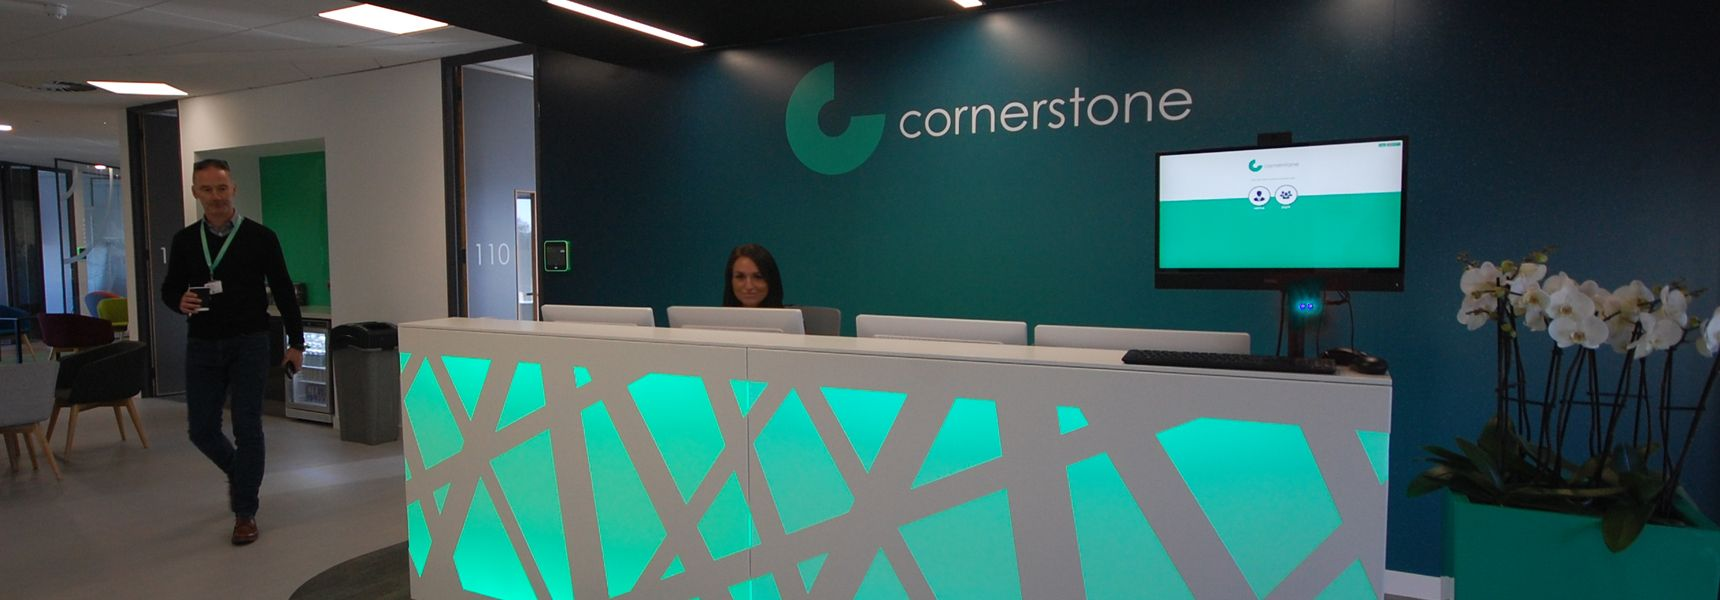 Welcome to Cornerstone, explore our brand